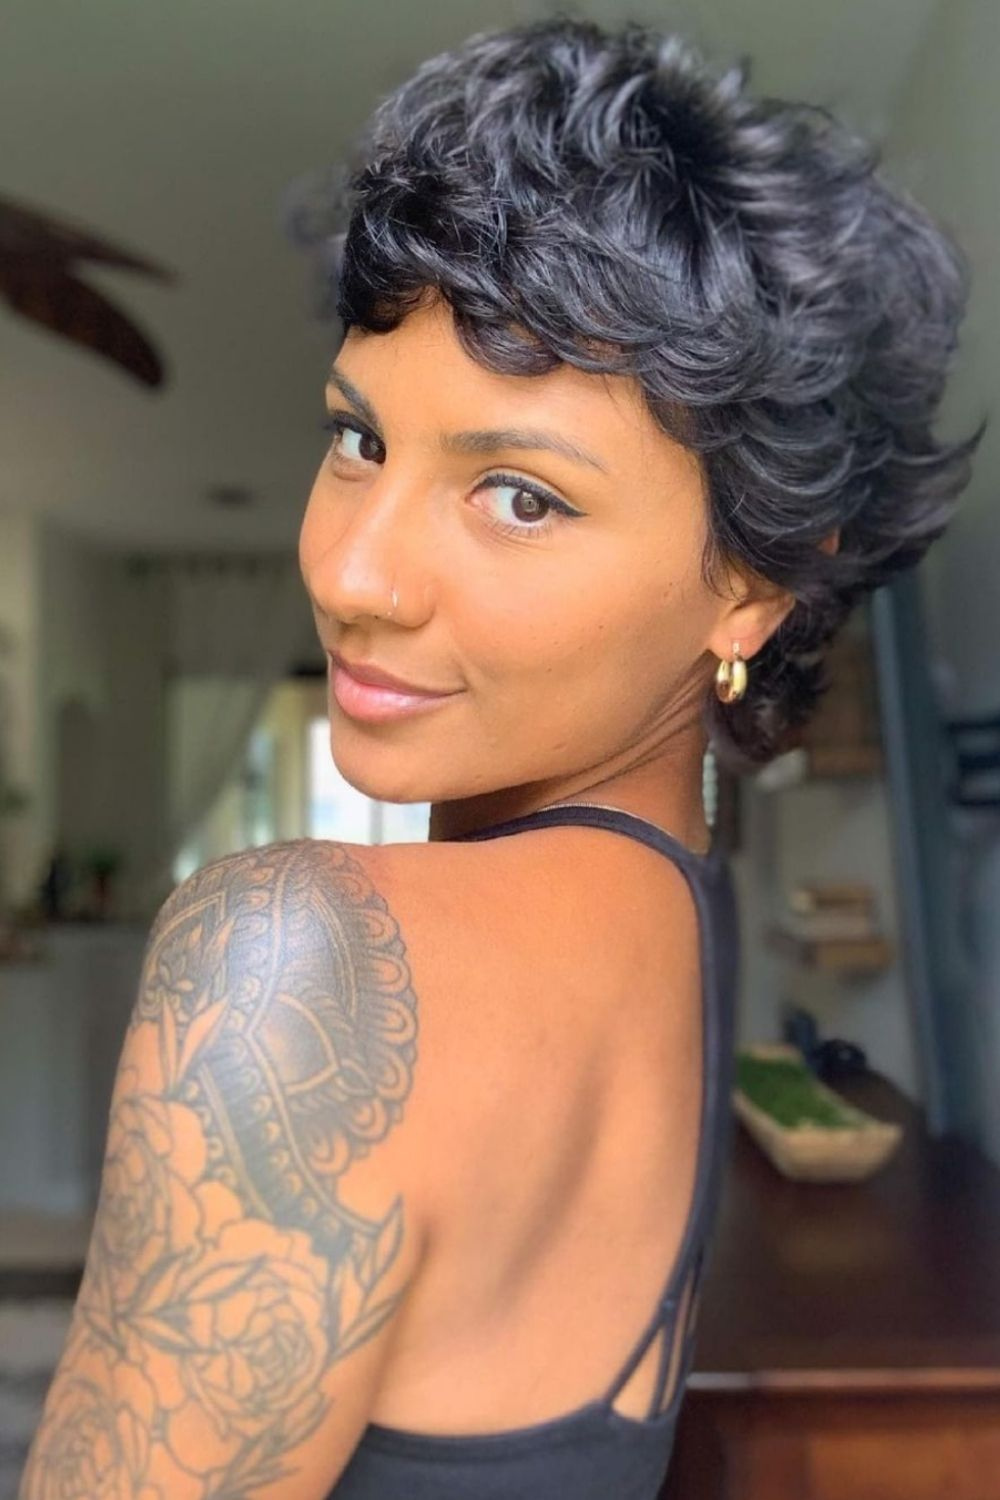 45 BEST PIXIE HAIRCUTS TO TRY IN 2021